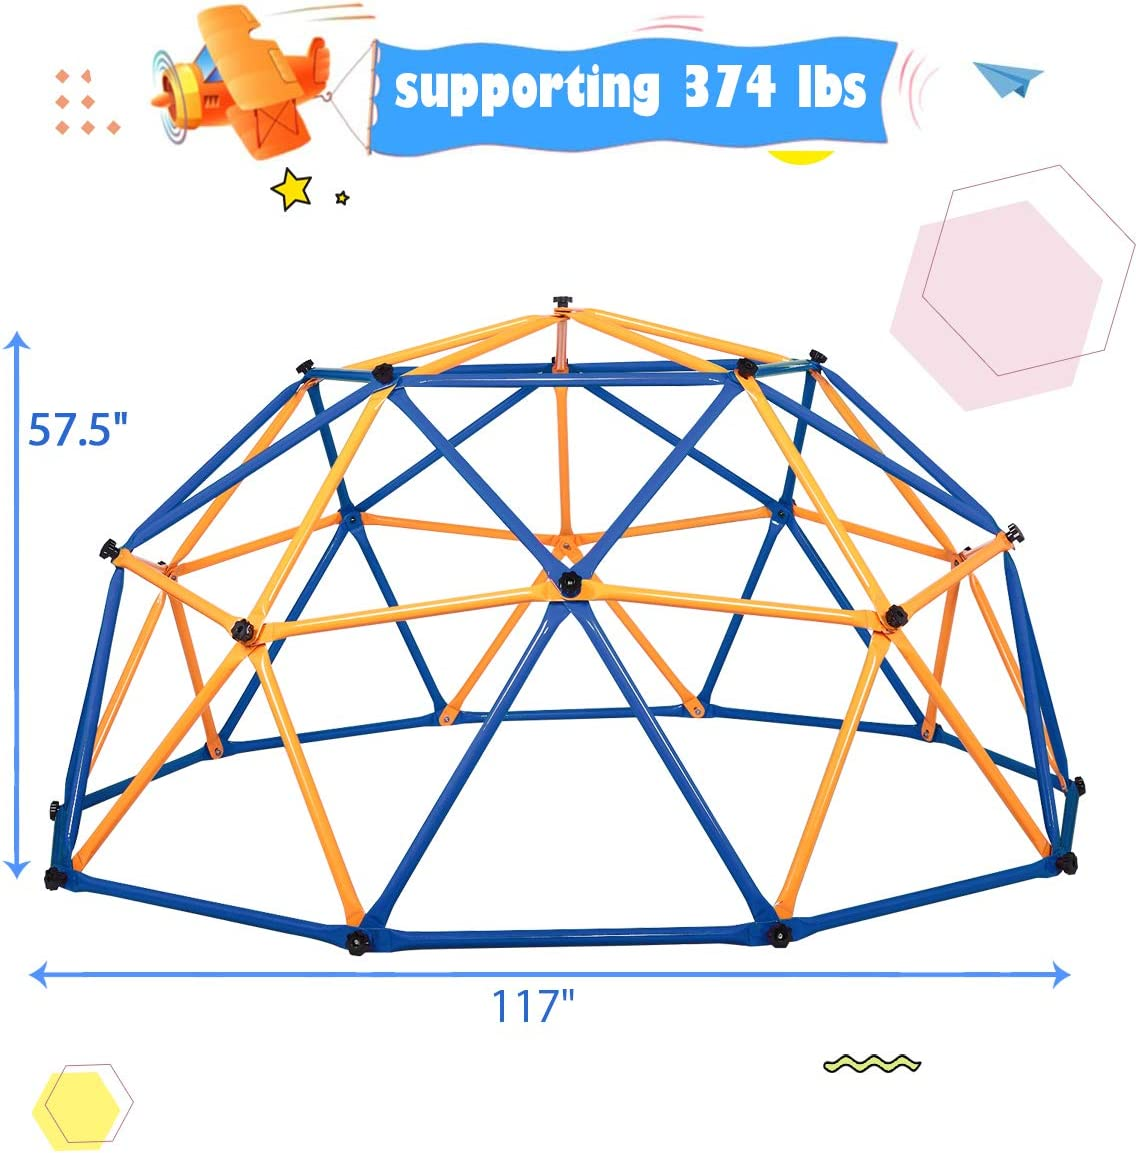 TOBBI Outdoor Dome Climber Backyard Playsets Jungle Gym Climbing Frame with 375 LBS Capacity for Kids Ages 3-10,Blue and Yellow